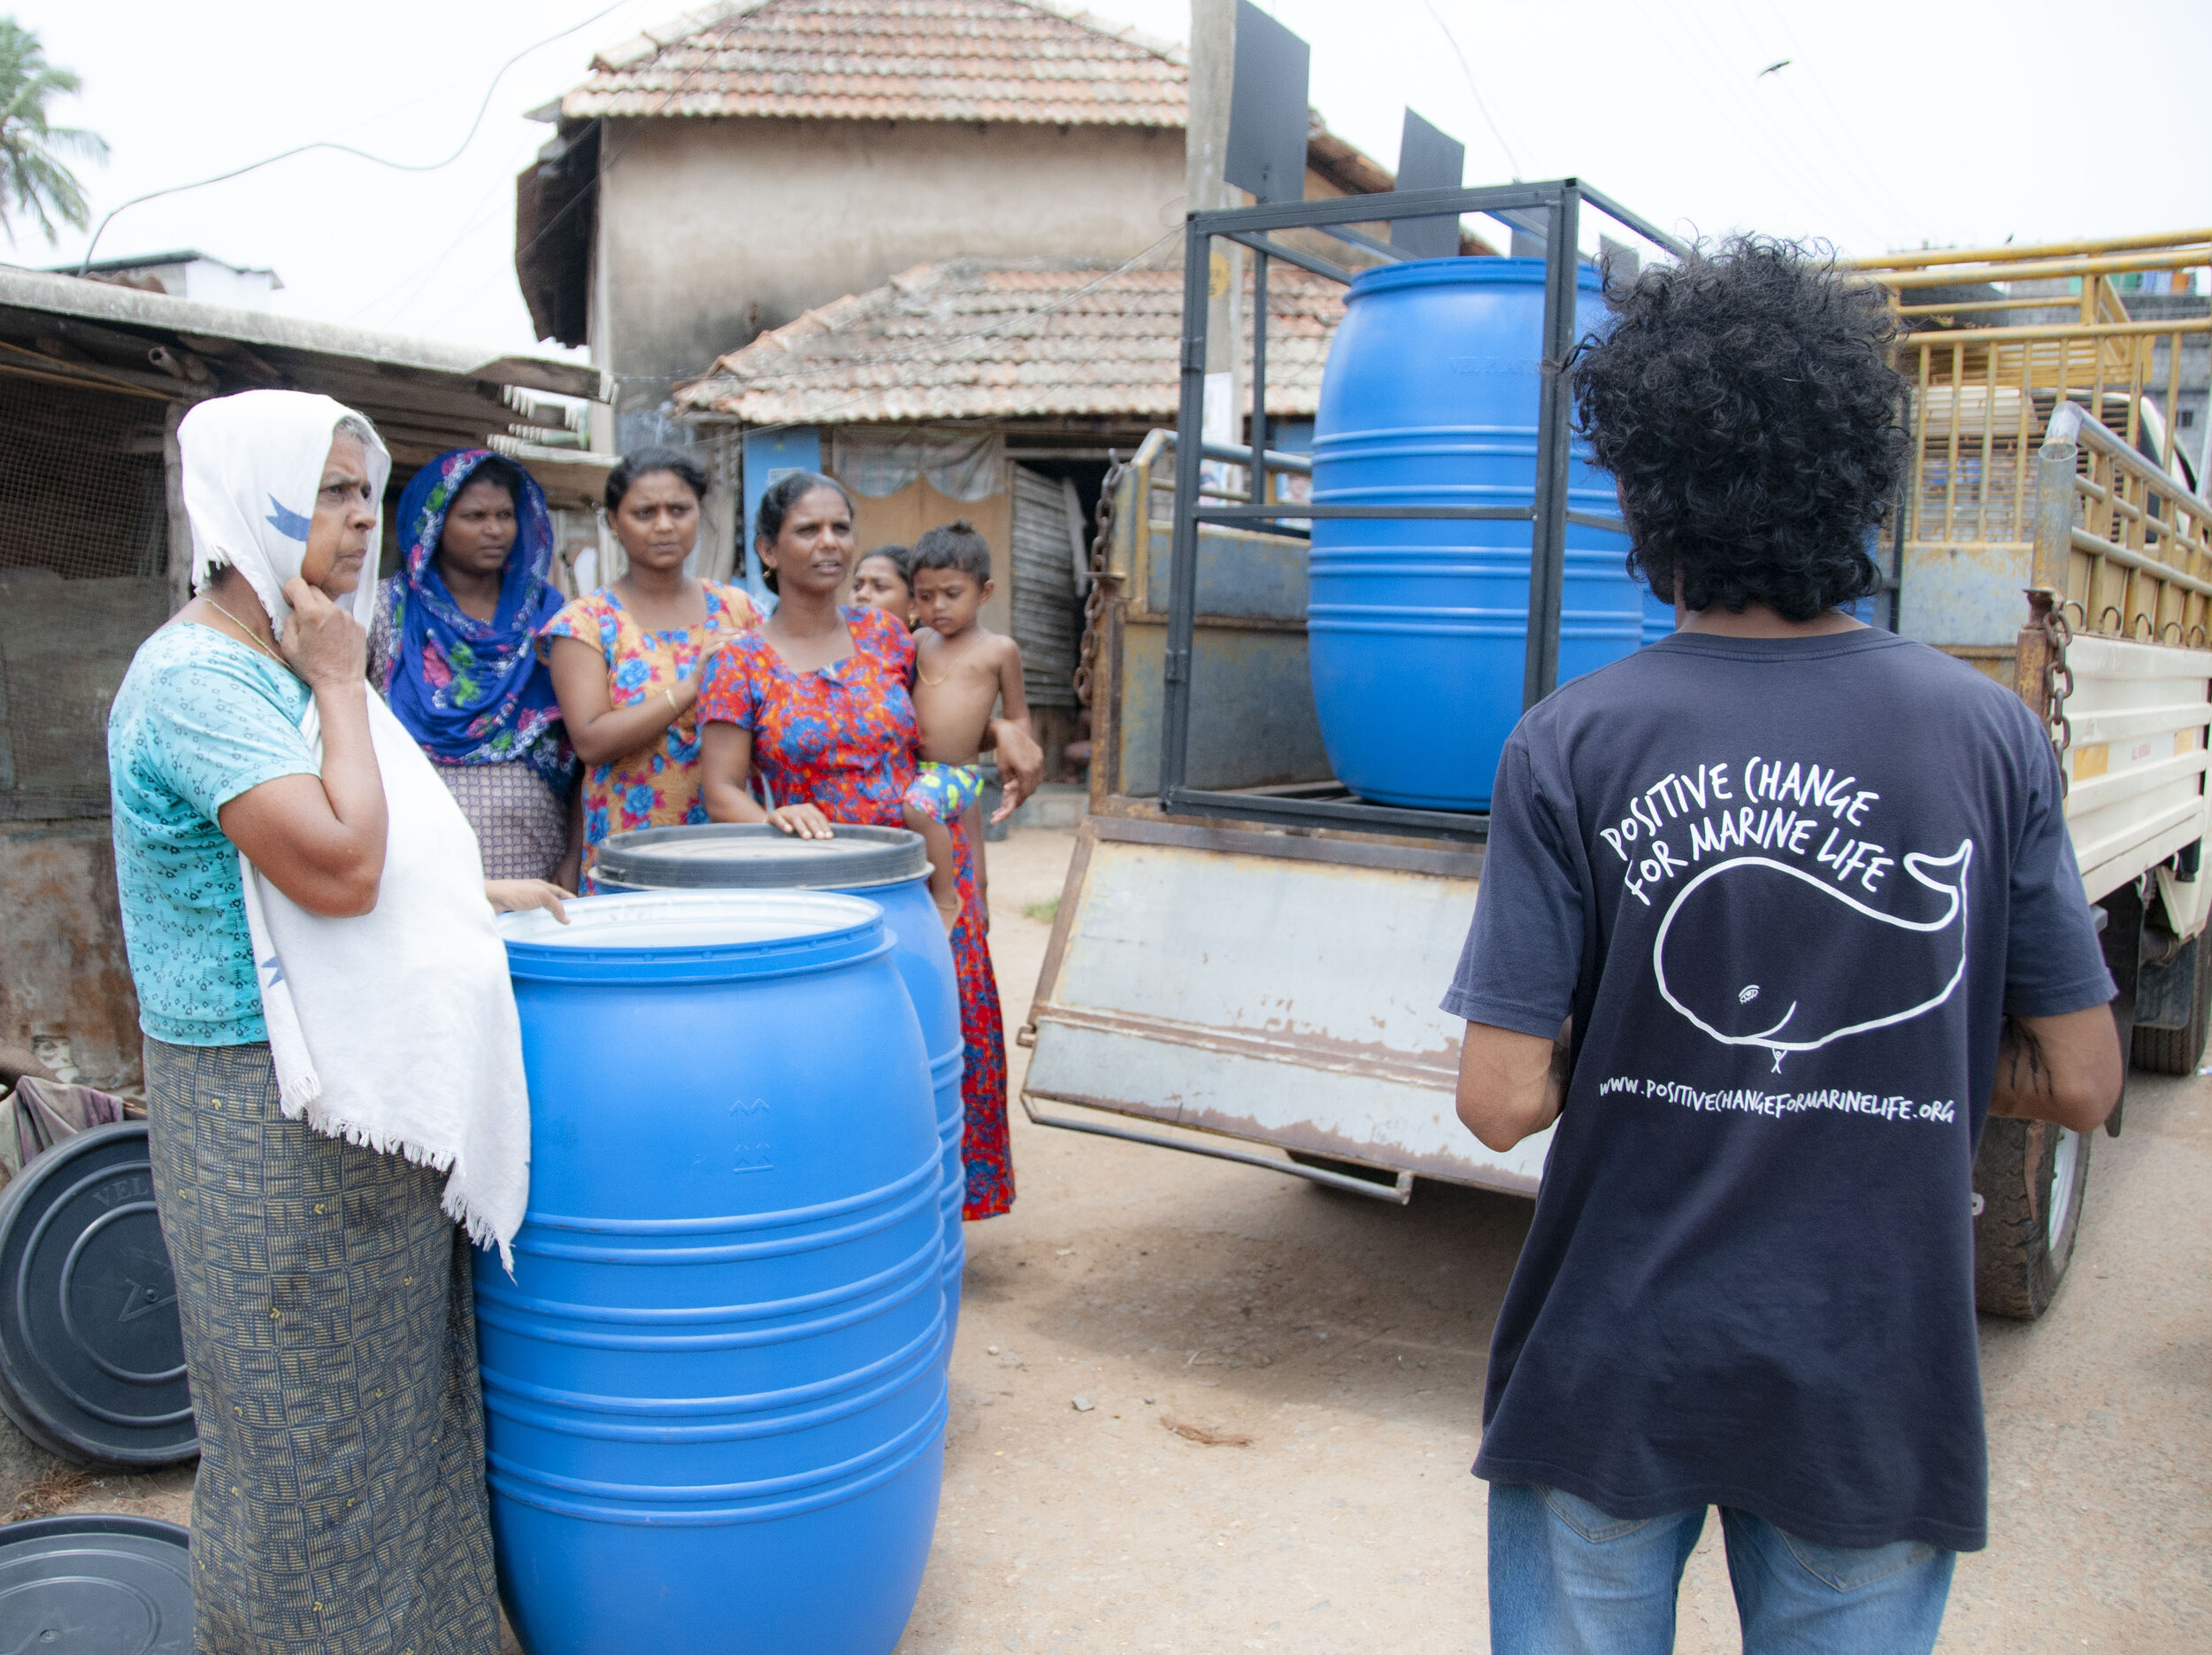 Krishna delivering our new recycling bins to the community in Kottapuram.